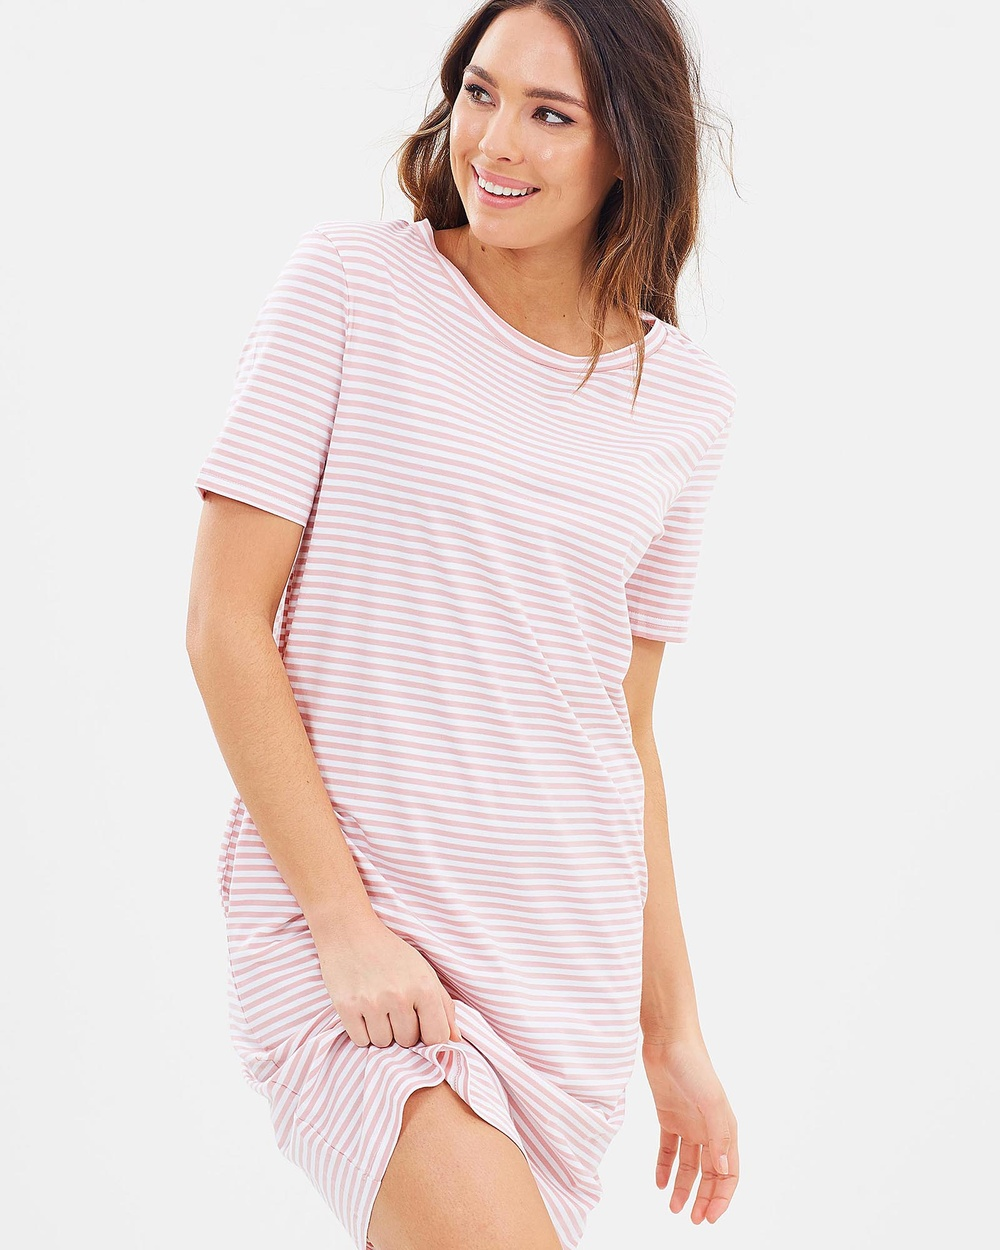 Lincoln St The Boxy Dress Dresses Smoke Pink Stripe The Boxy Dress